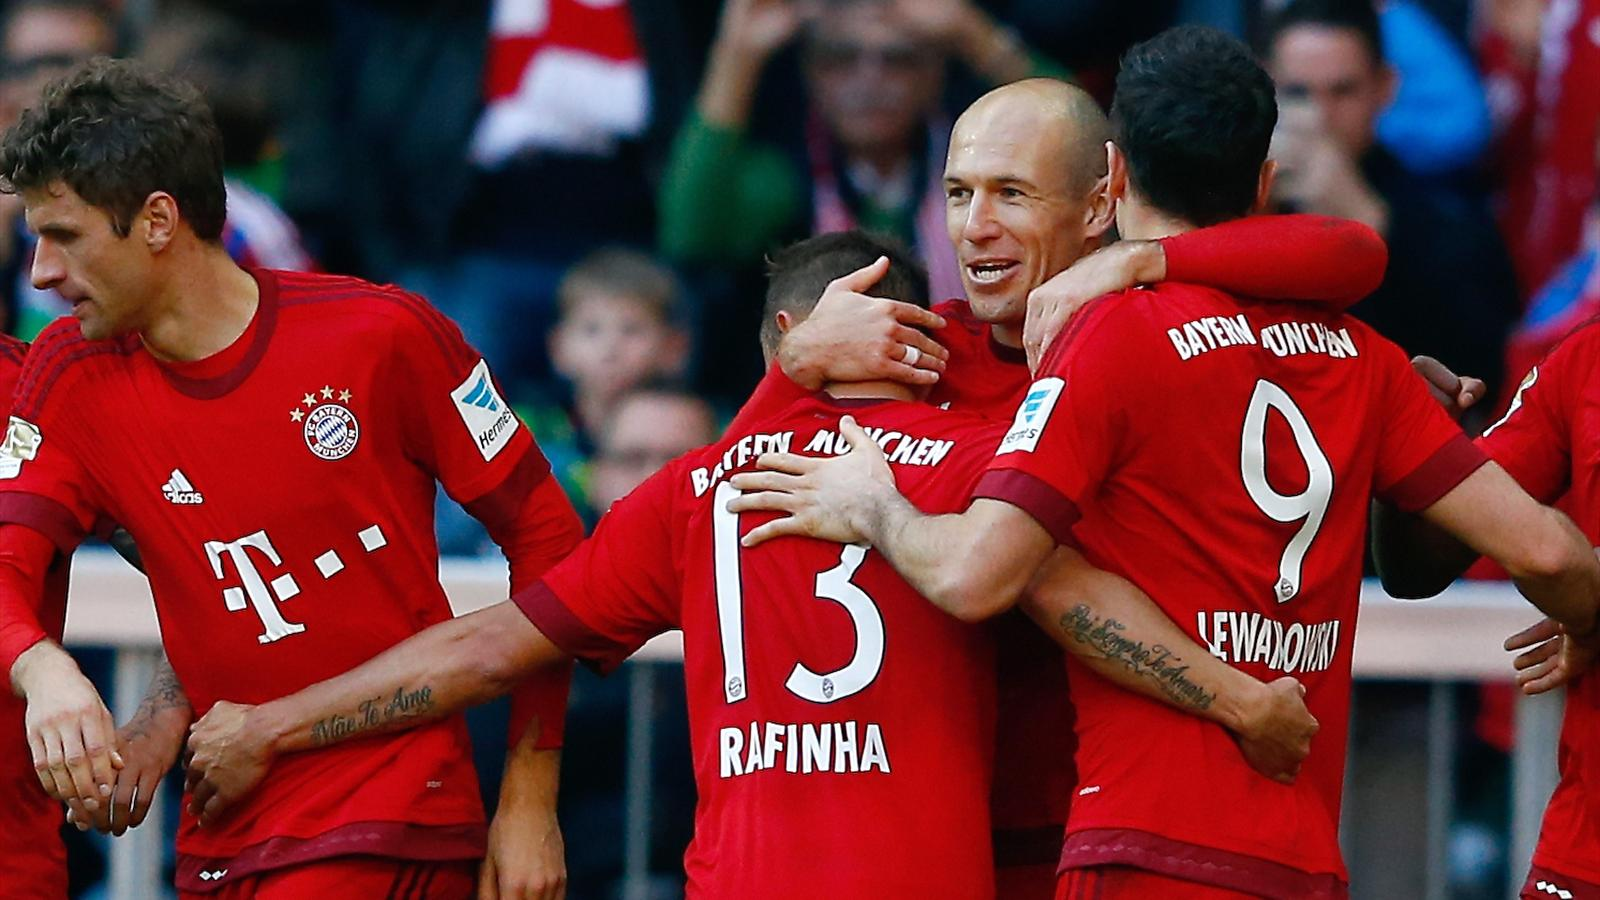 Bayern Munich's Arjen Robben (2nd R) celebrates with team mates after he scored against Cologne during their Bundesliga clash